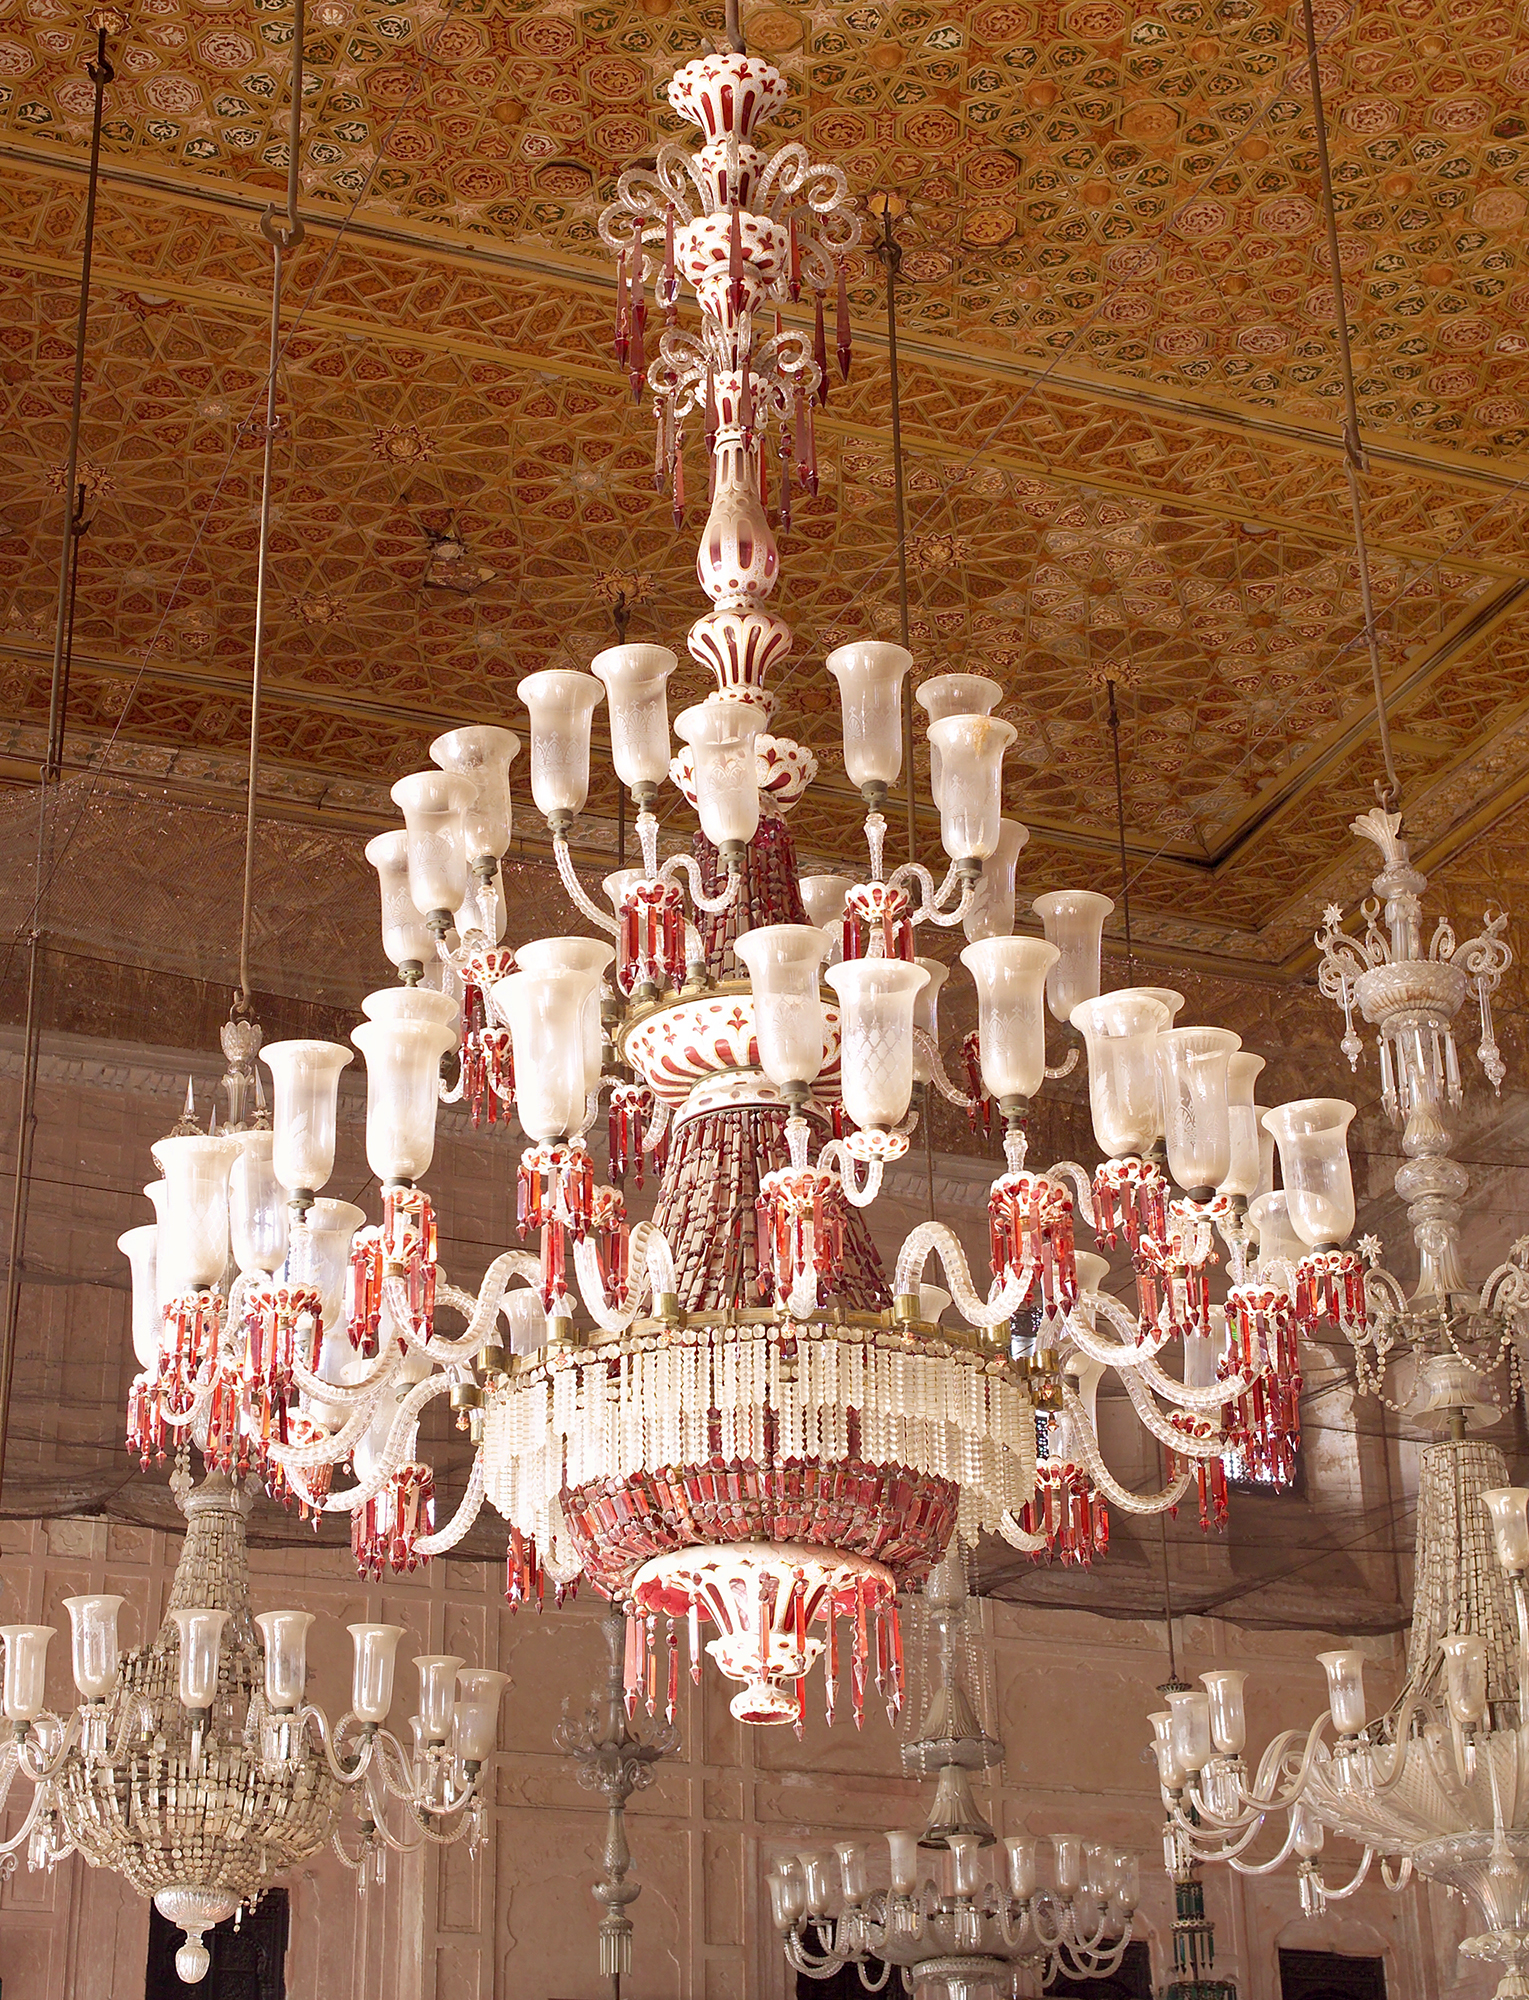 All about glass corning museum of glass 8 red cased chandelier in durbar hall at qila mubarak patiala f c osler probably 1870s aloadofball Choice Image